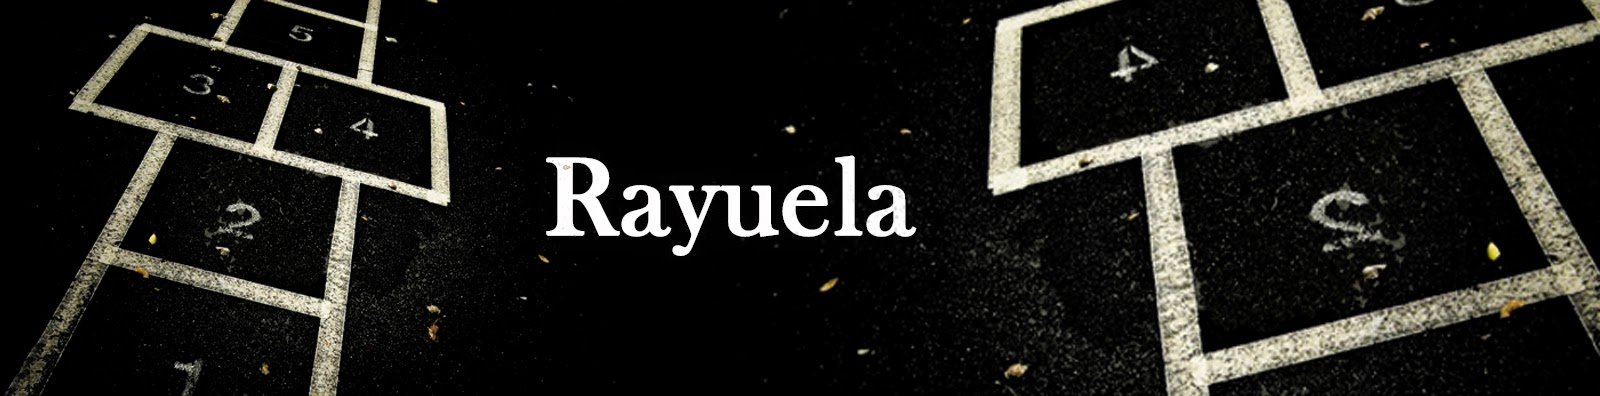 http://chronicle-cover.blogspot.com.es/2014/10/resena-12-rayuela.html